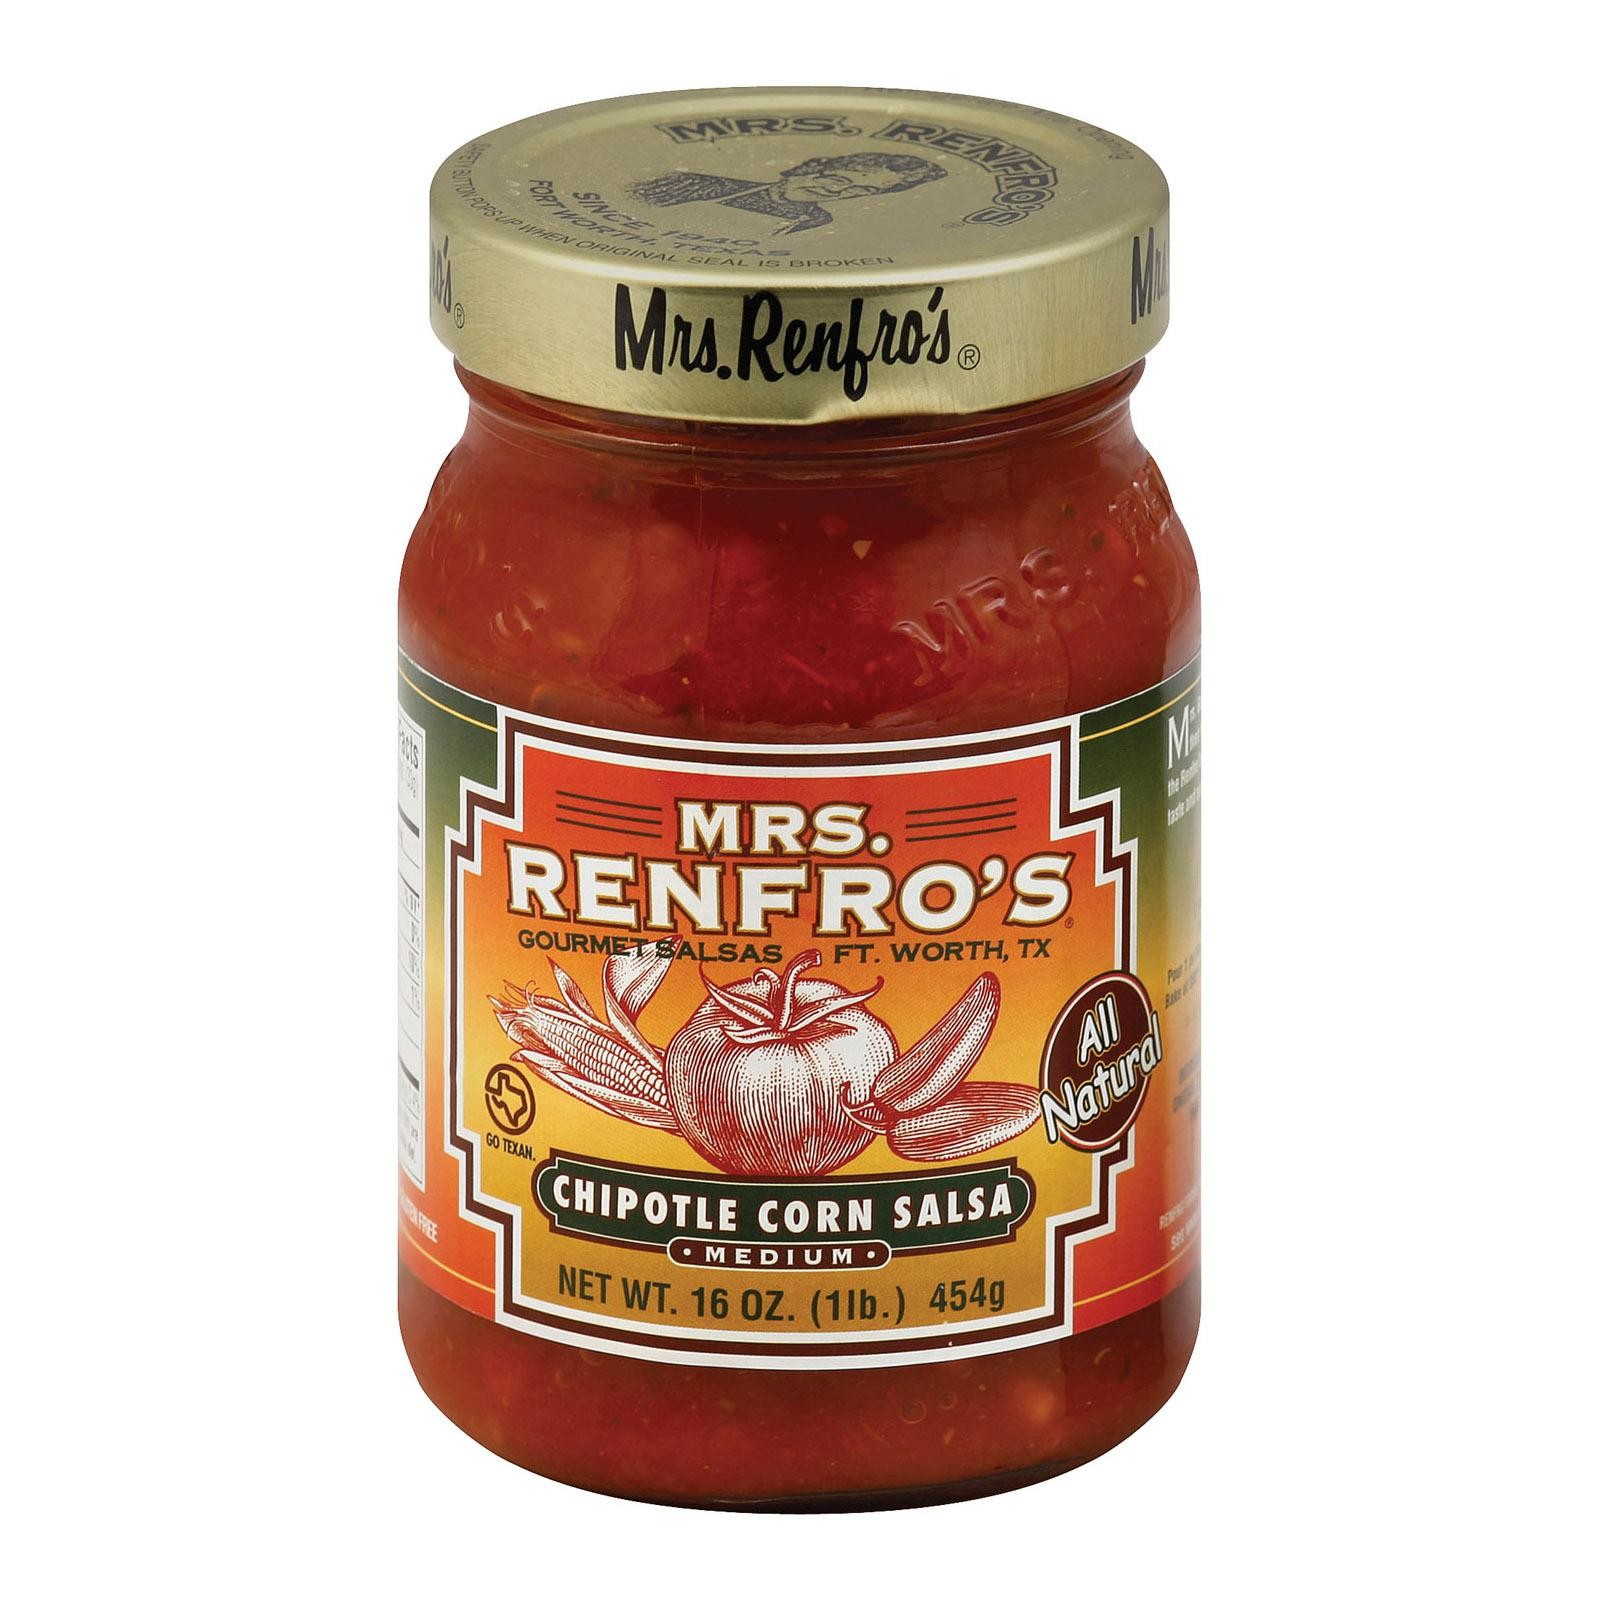 Mrs. Renfro's Chipotle Corn Salsa - Corn - Pack of 6 - 16 Oz.